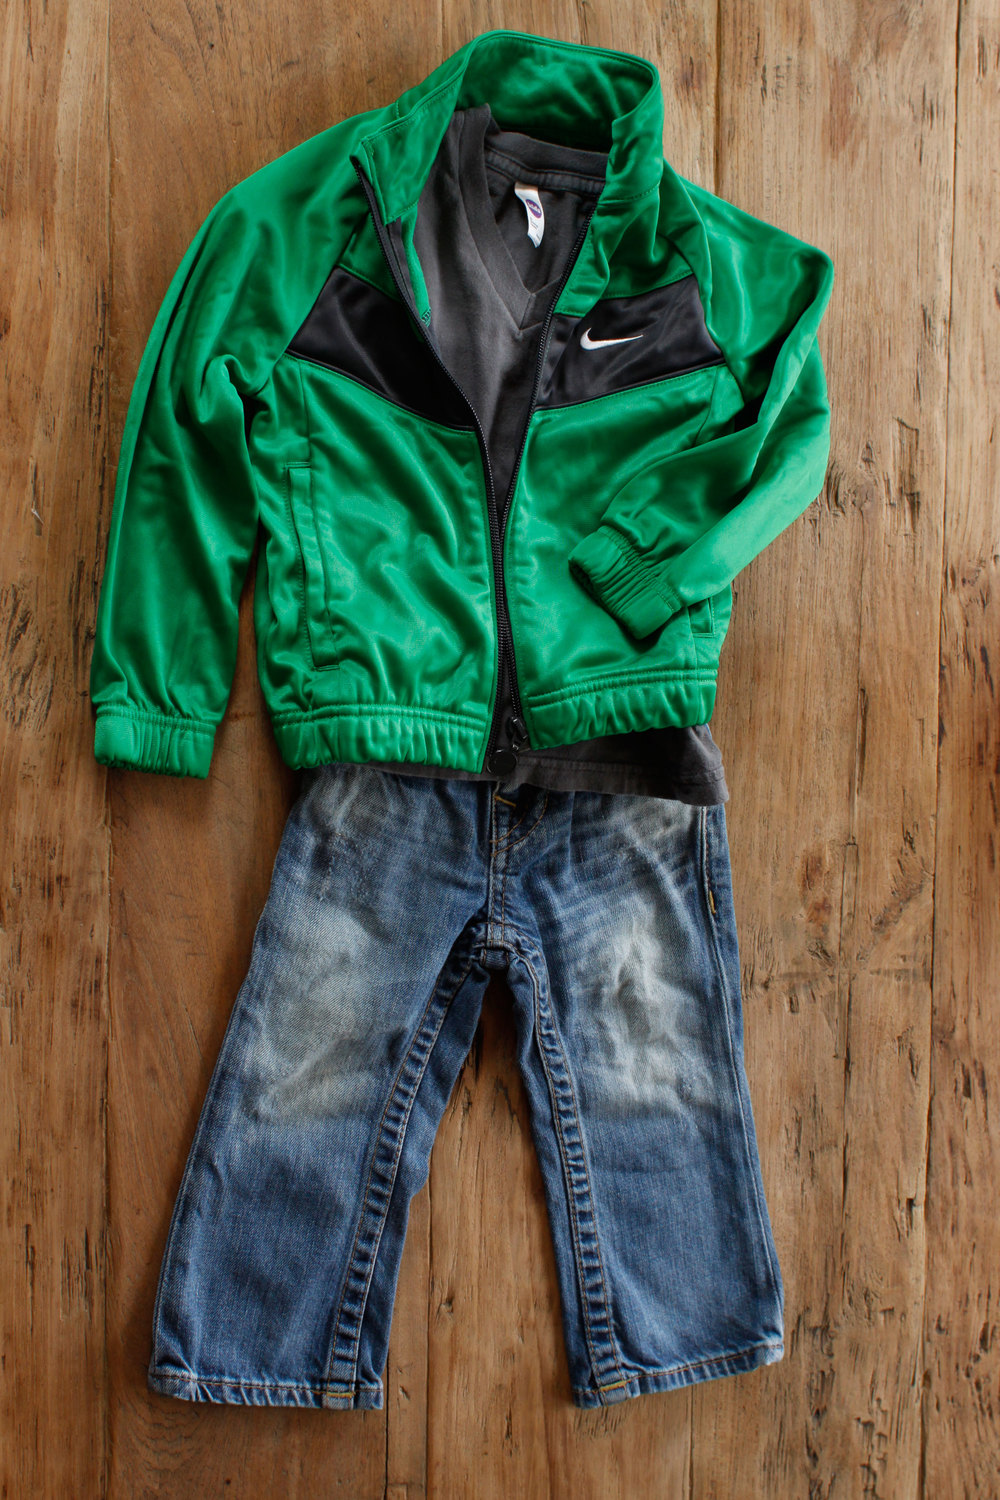 Image includes Boys Nike sports jacket. Size: 2T $6.50.